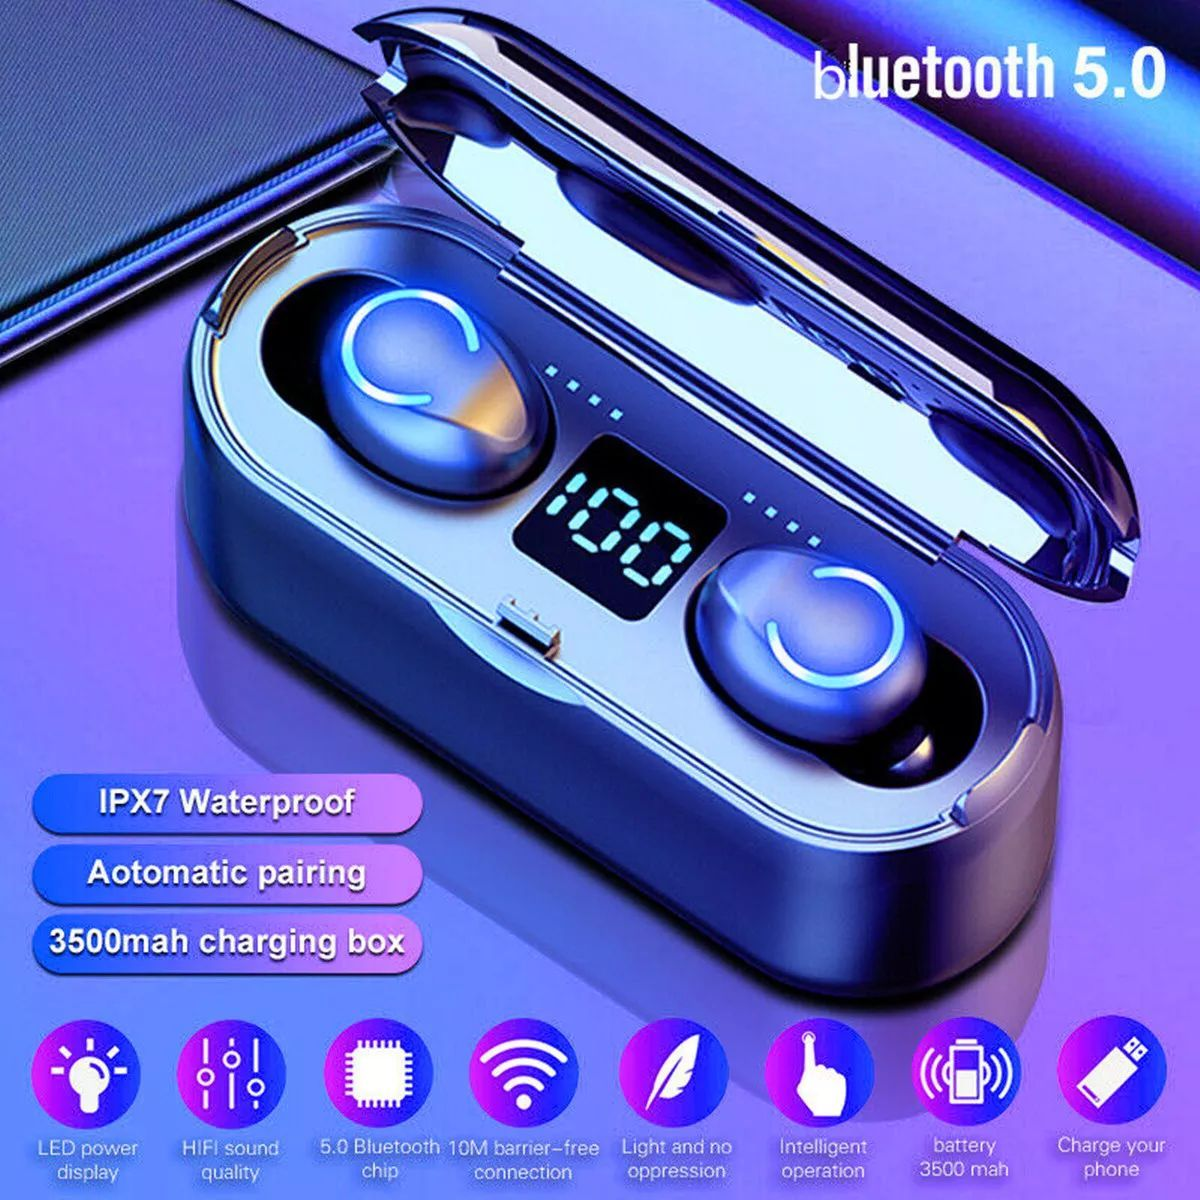 F9 8 Tws Wireless Earbuds Bluetooth 5 0 Earphone Hifi Stereo 3500mah Power Bank Ipx7 Waterproof Headphone With Mic For Iphone Xiaomi Audio Video Devices From Waterproof Headphones Earbud Headphones Hifi Stereo